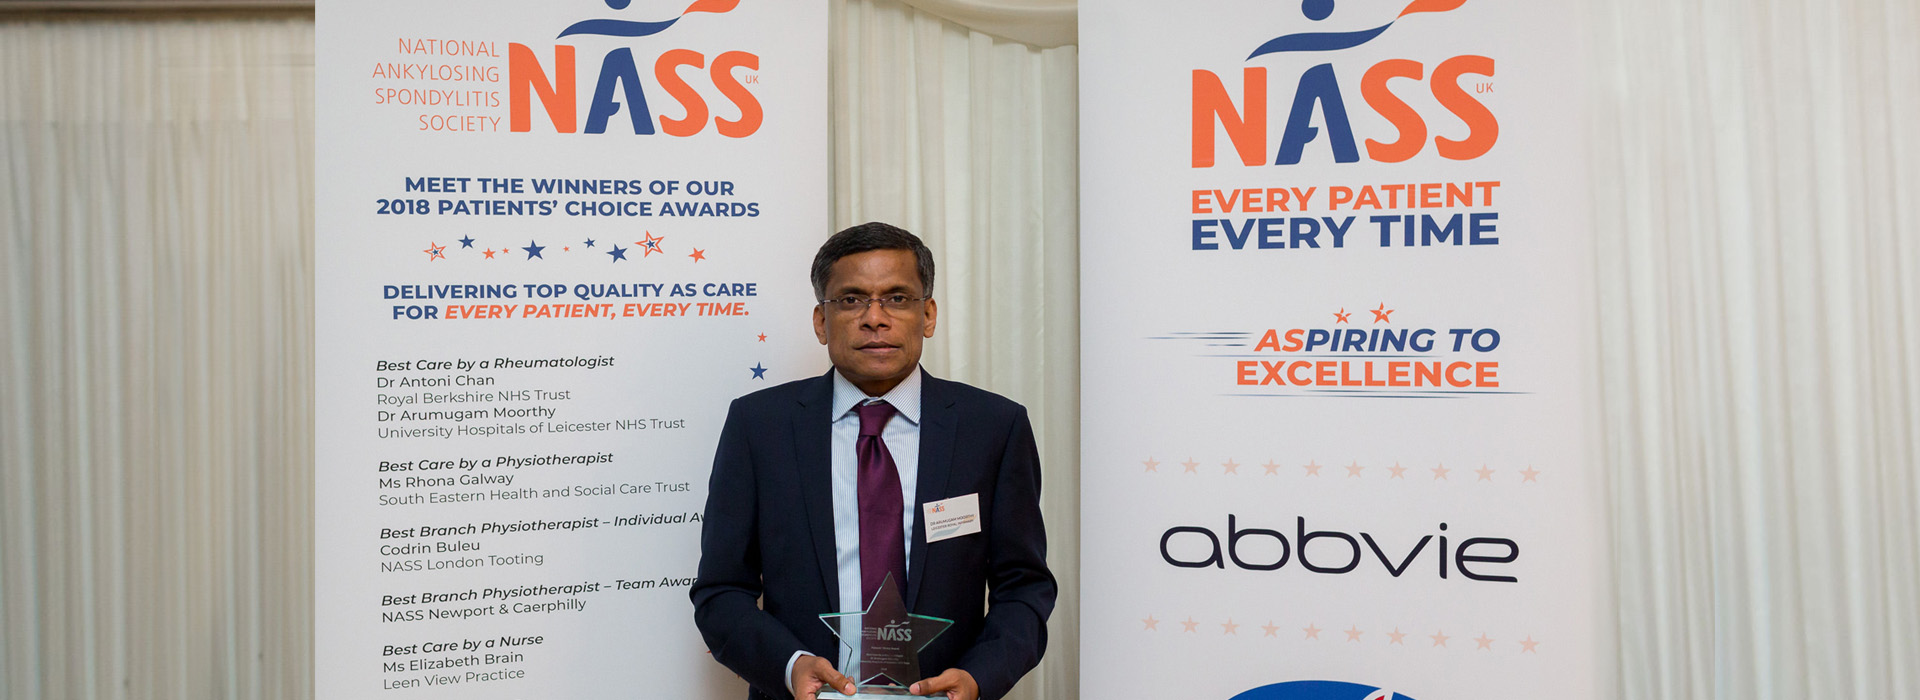 Patients Choice Award Winner - Dr Arumugam Moorthy